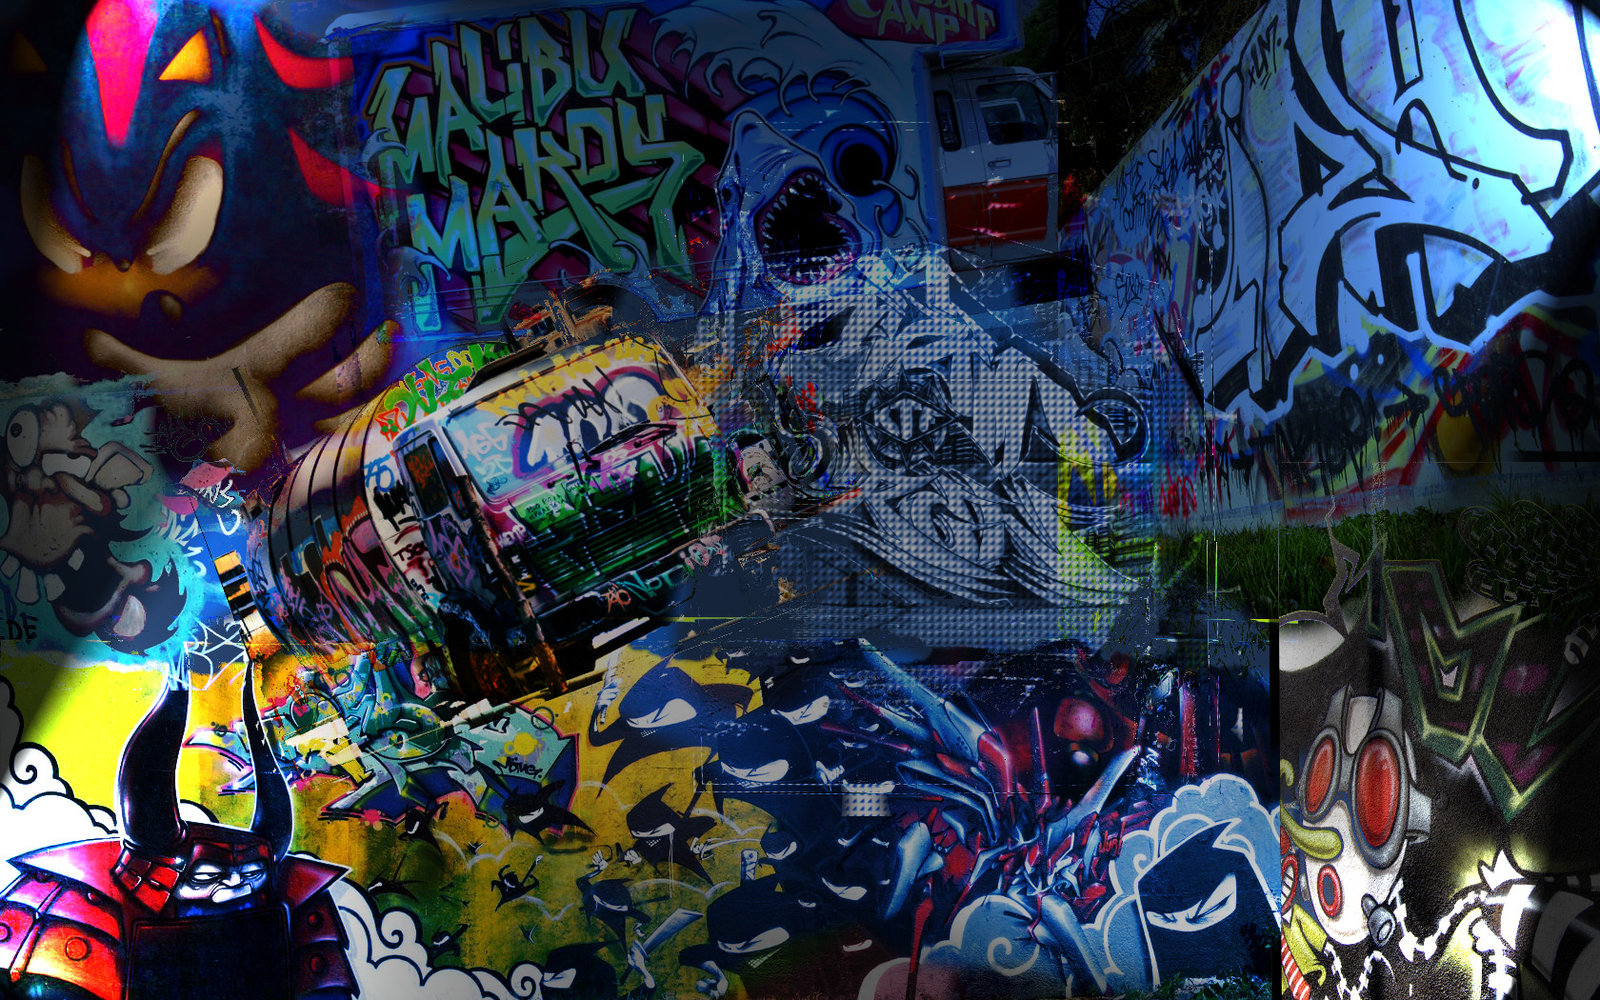 43] Graffiti Wallpapers for Desktop on WallpaperSafari 1600x1000